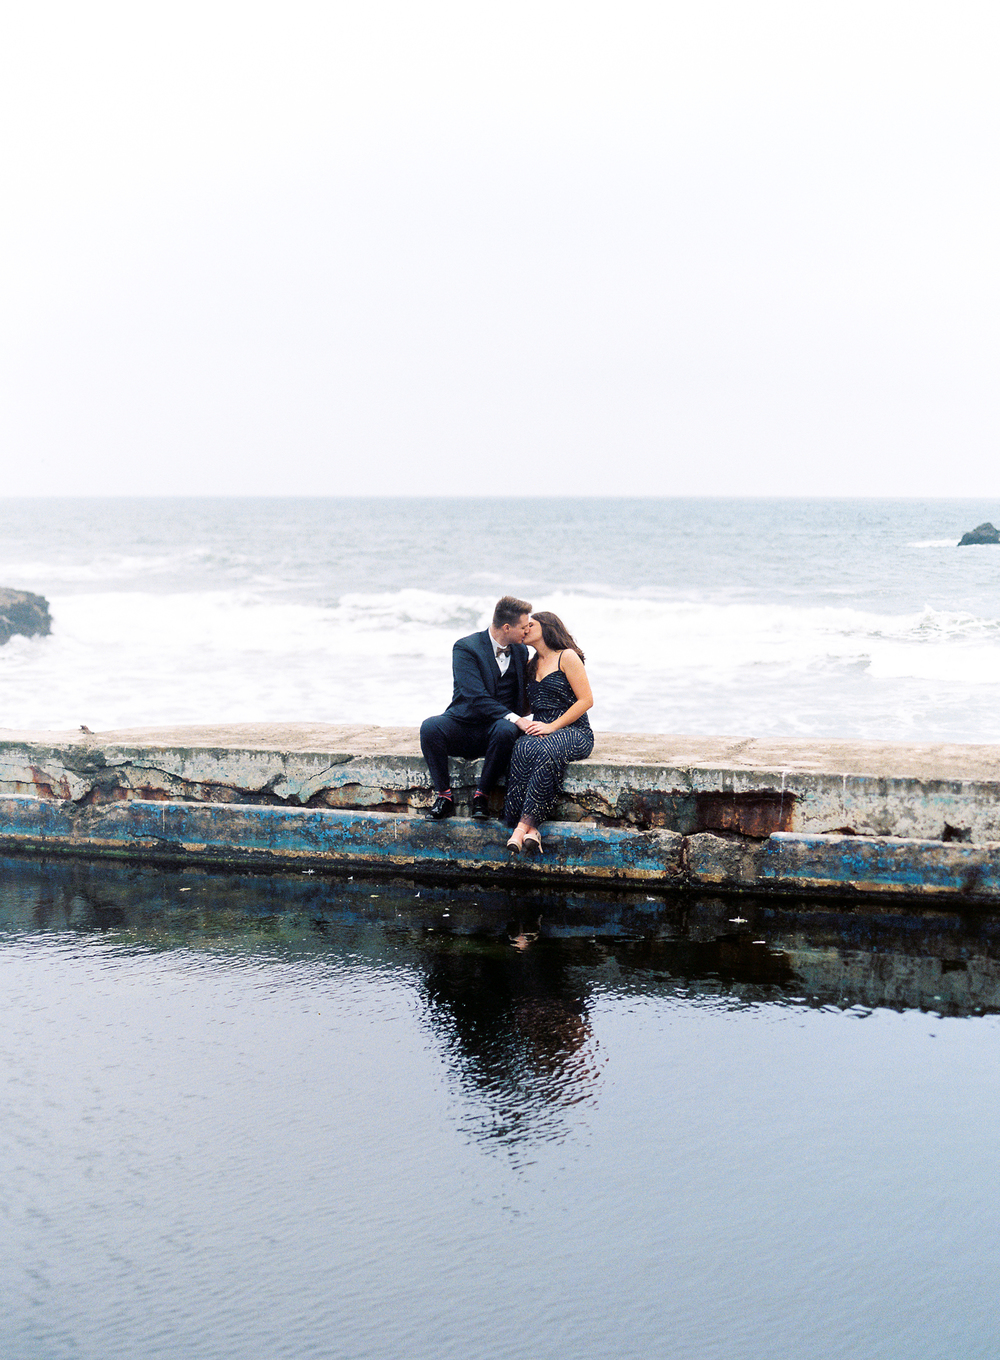 sutro-baths-engagement-56.jpg